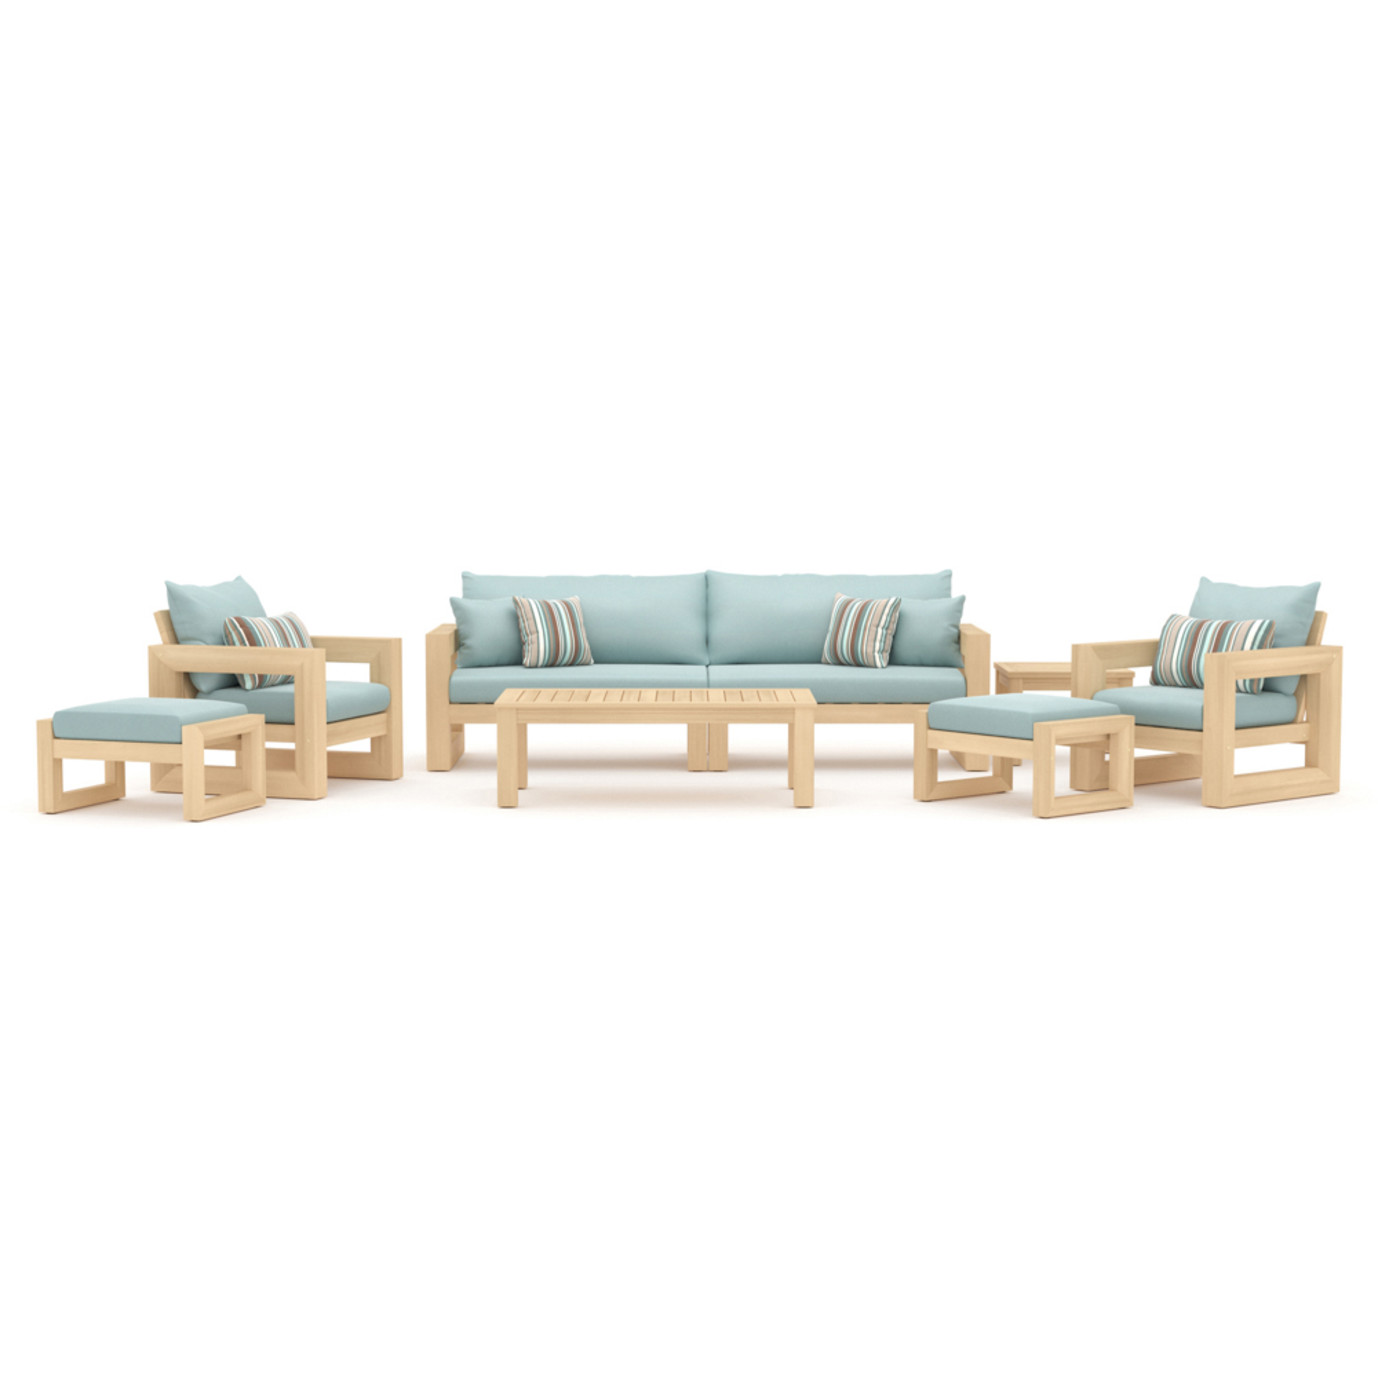 Benson 8pc Sofa & Club Chair Set - Bliss Blue